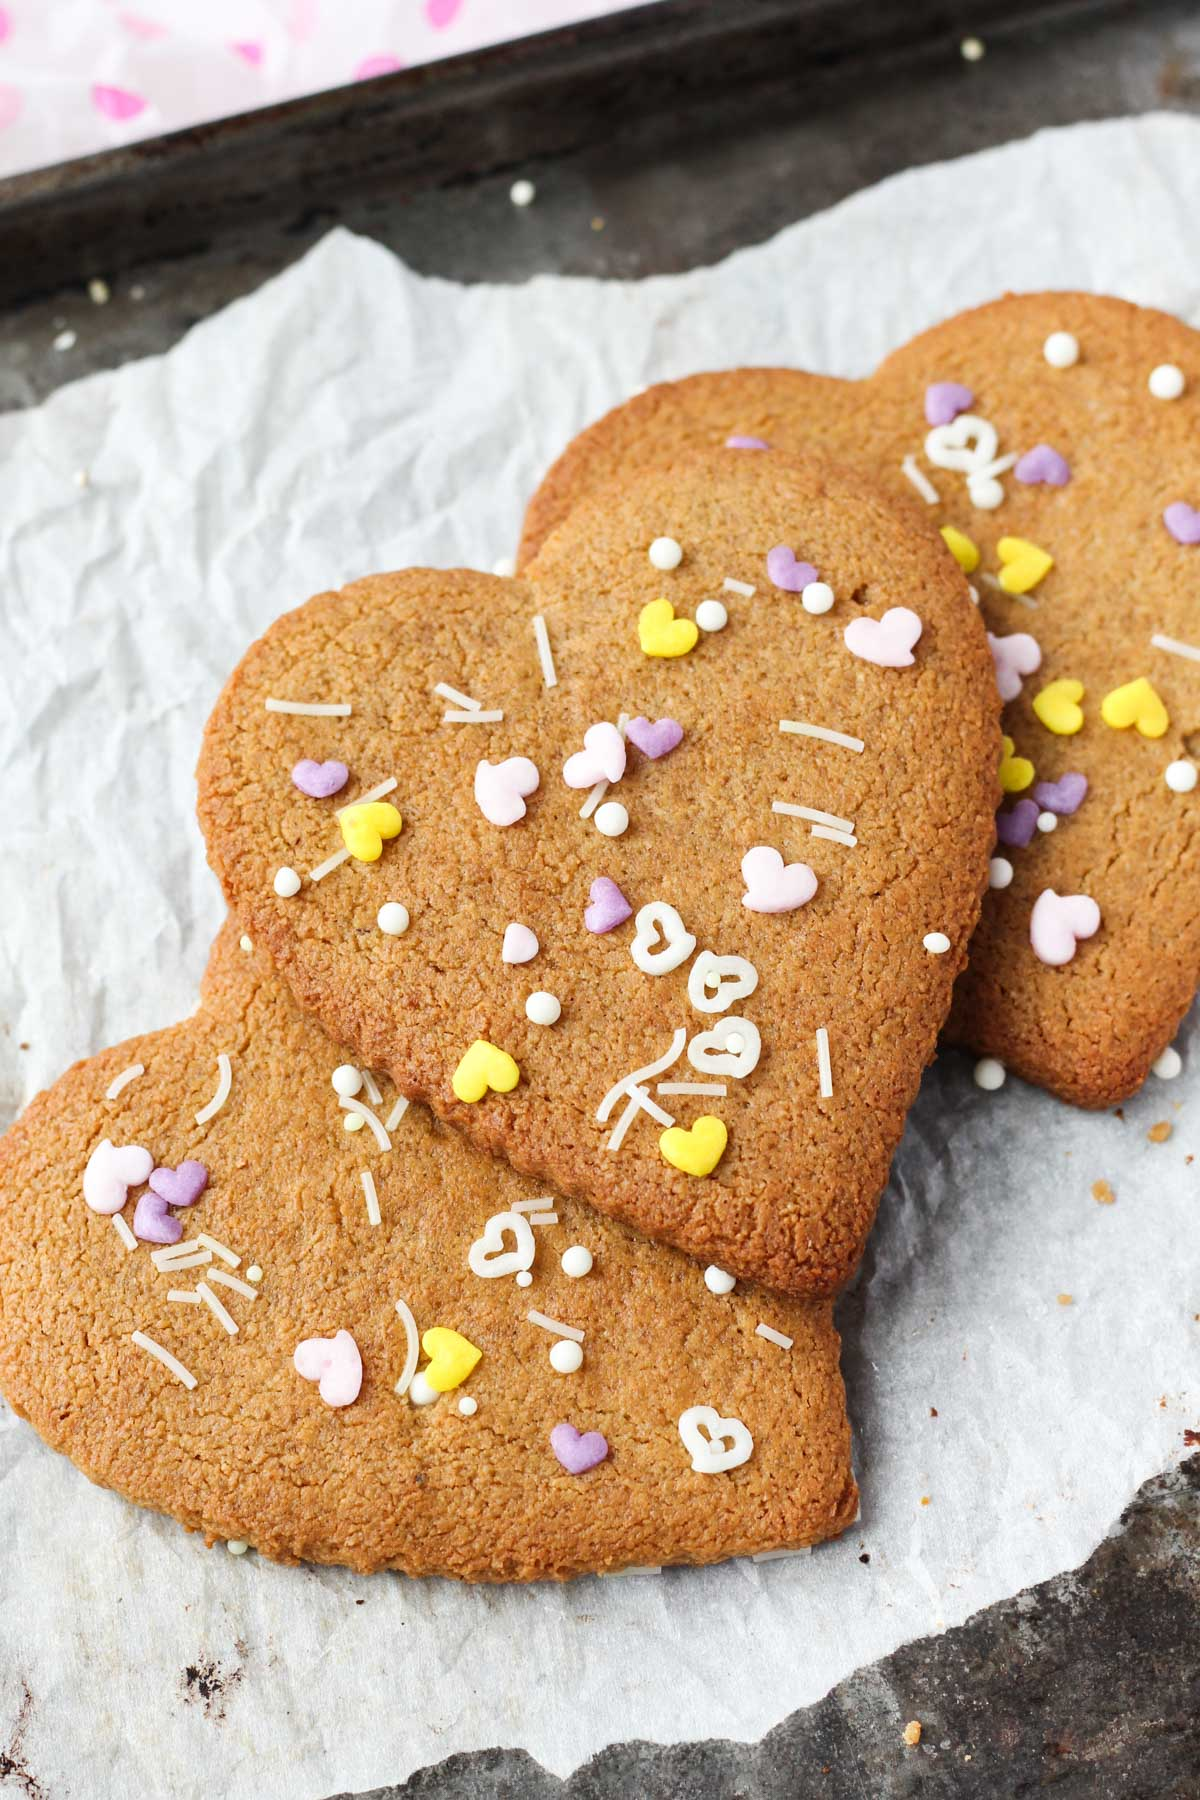 Sugar cookies with colorful sprinkles on top.